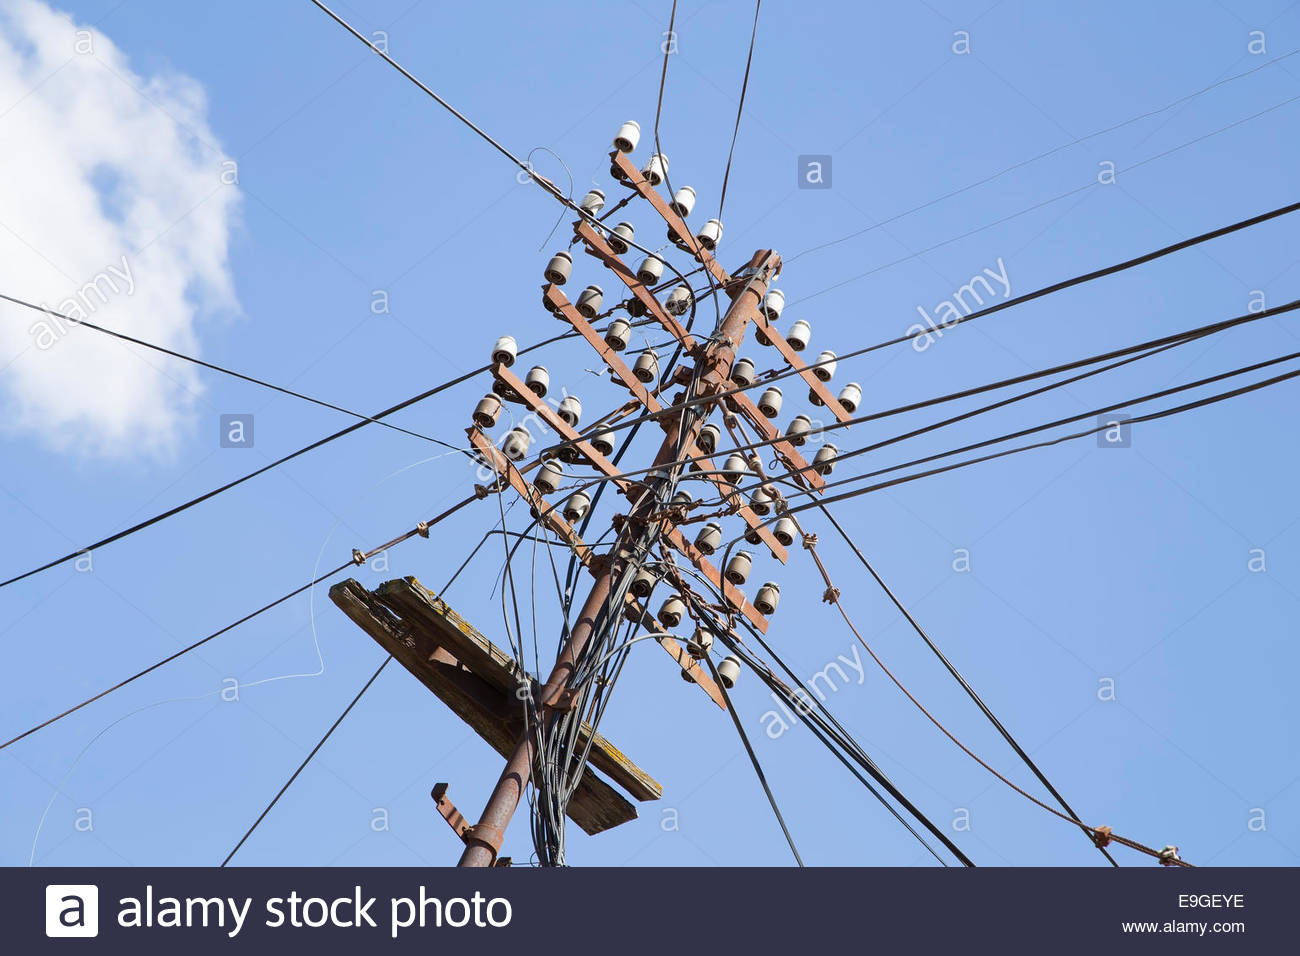 Antique Electric Wire Poles Center Pole Barn Electrical Wiring Diagram Vintage With Wires Stock Photo 74736354 Alamy Rh Com Double Switch